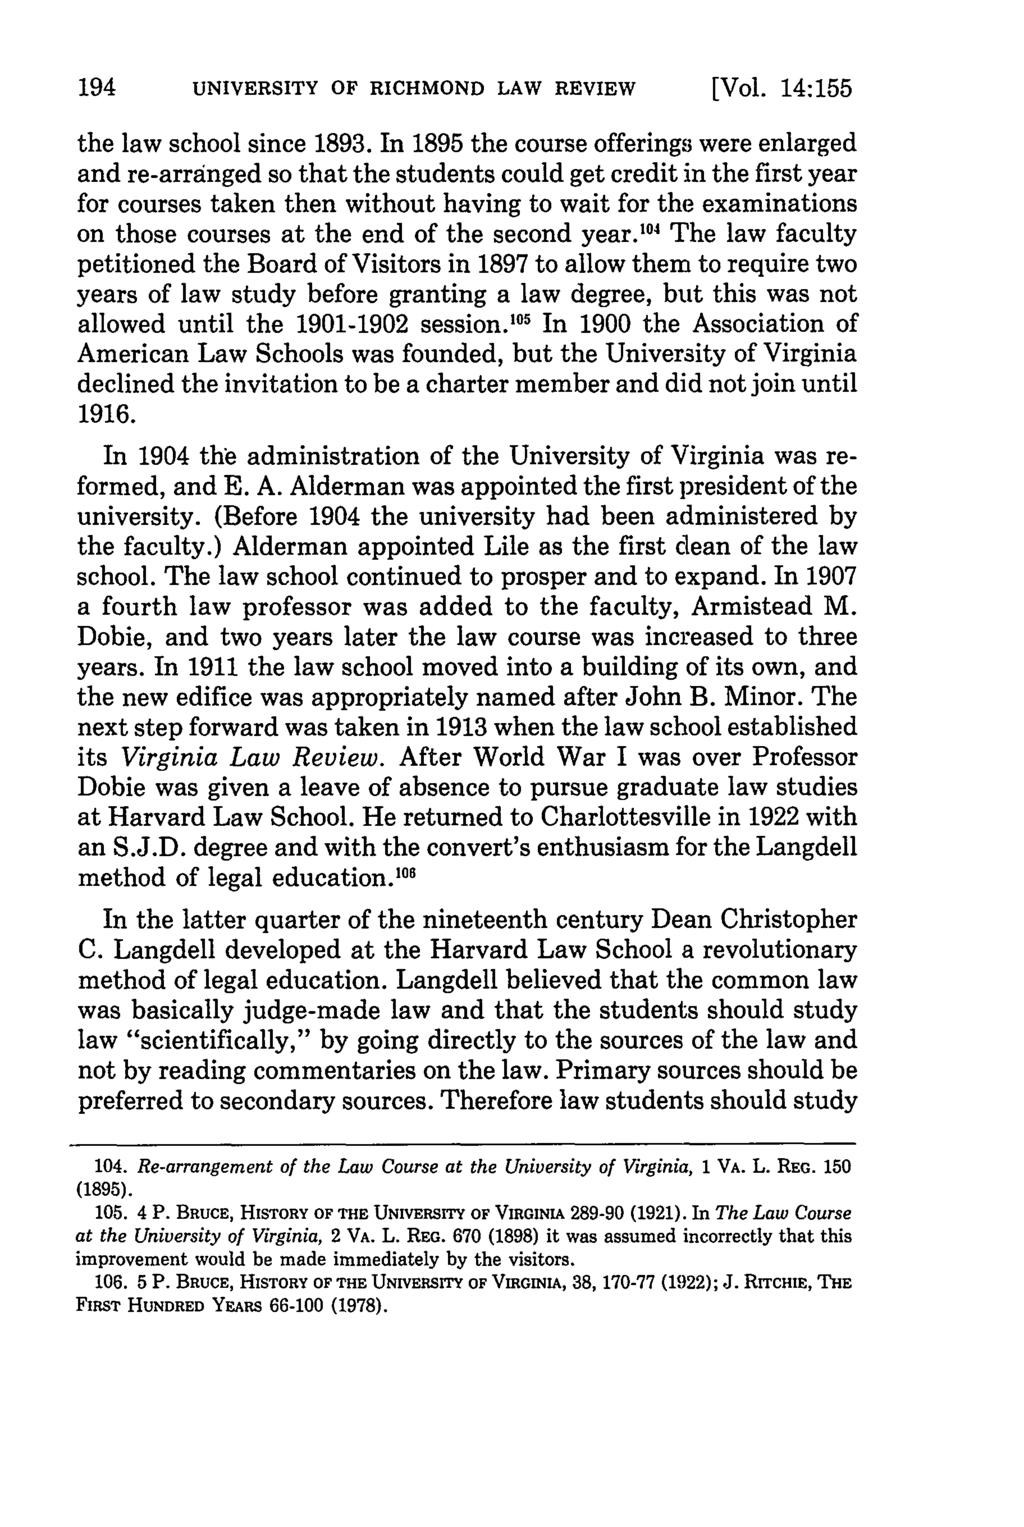 UNIVERSITY OF RICHMOND LAW REVIEW [Vol. 14:155 the law school since 1893.